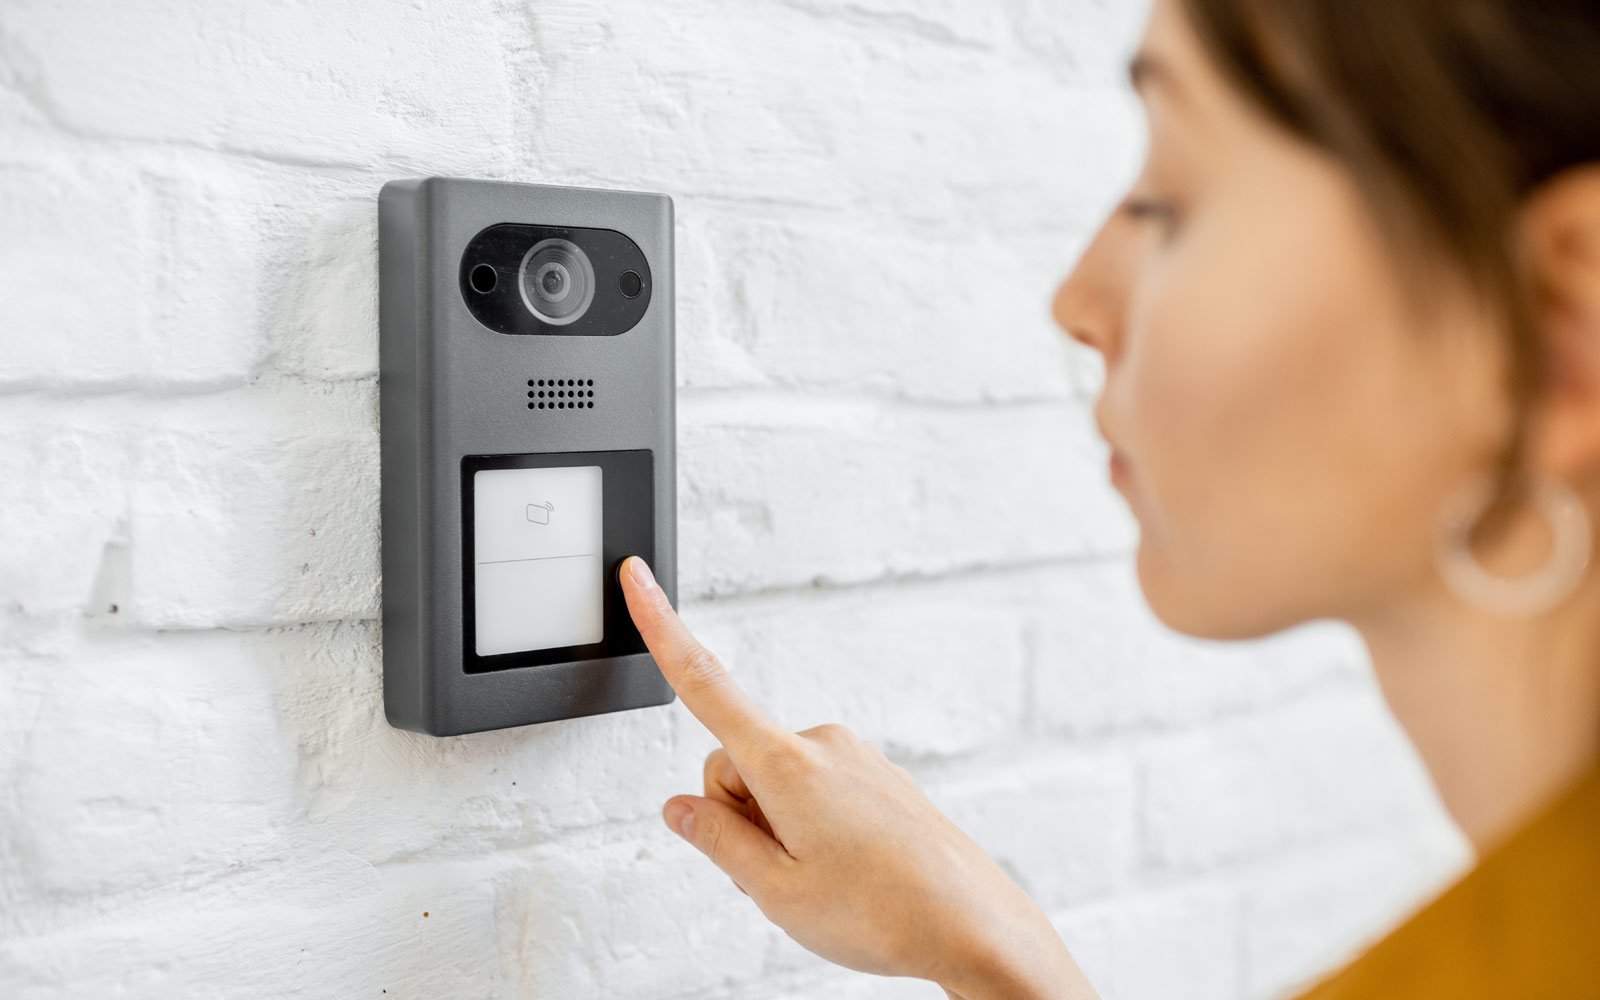 Intercom Systeme